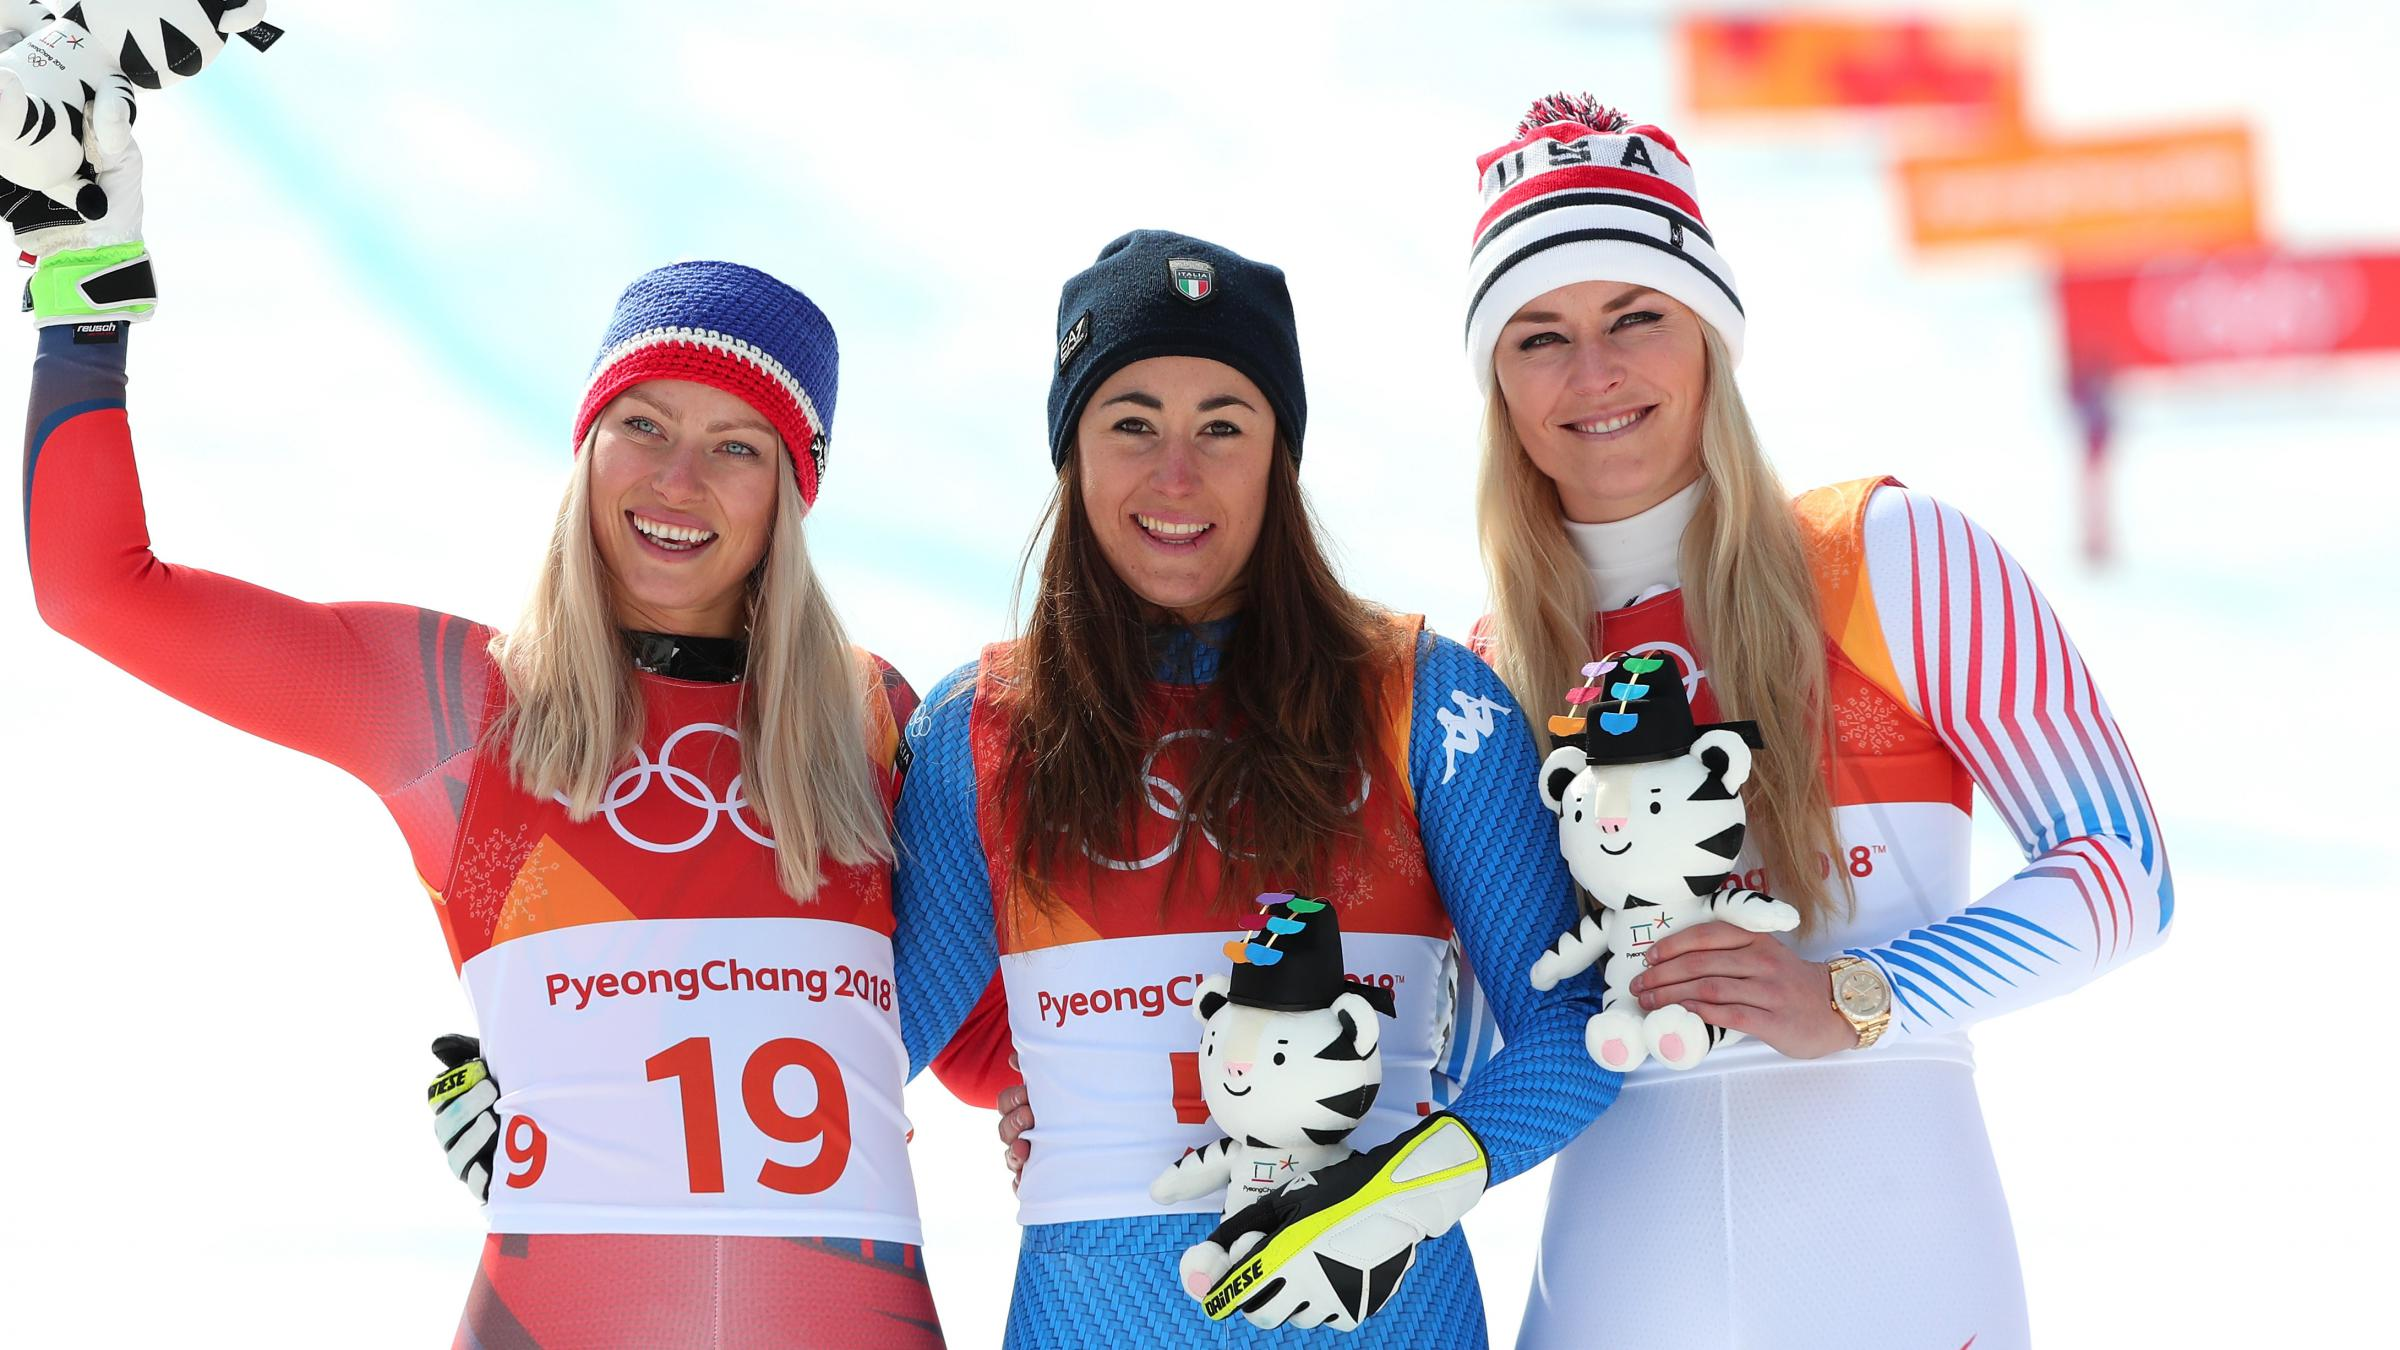 Lindsey Vonn Wins Bronze In Downhill At Pyeongchange Winter Olympics